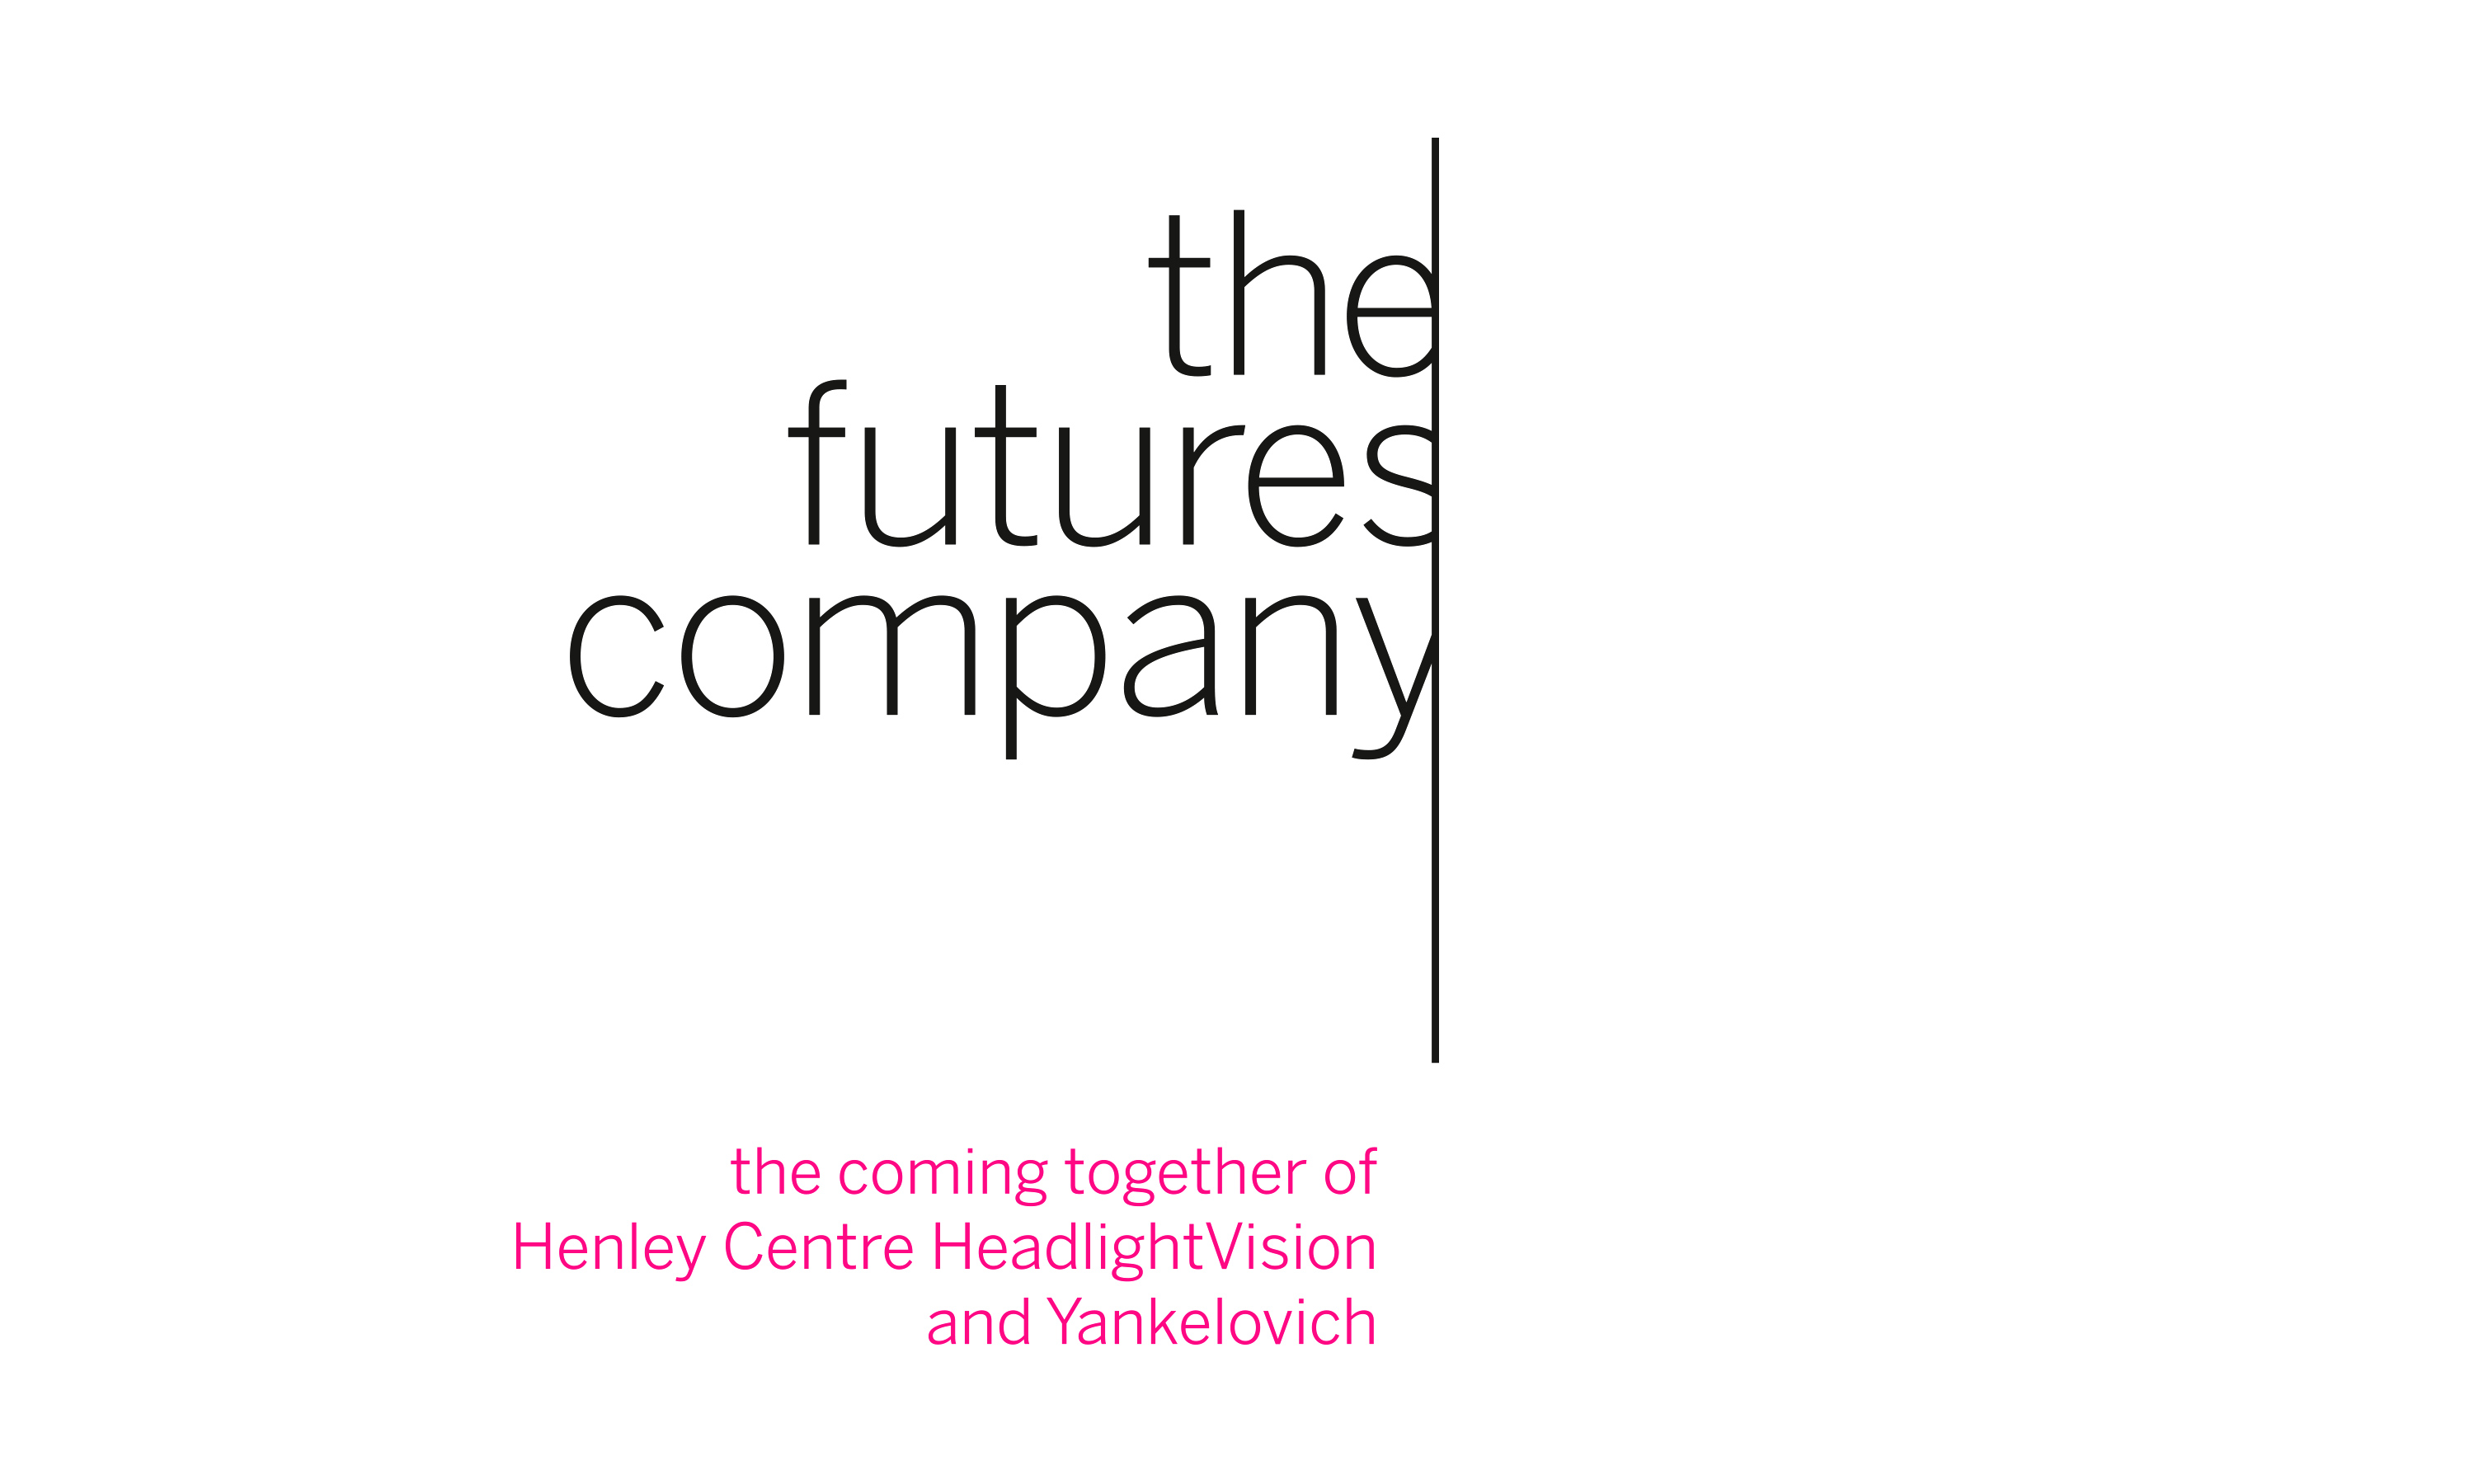 The Futures Company brand identity by Neon